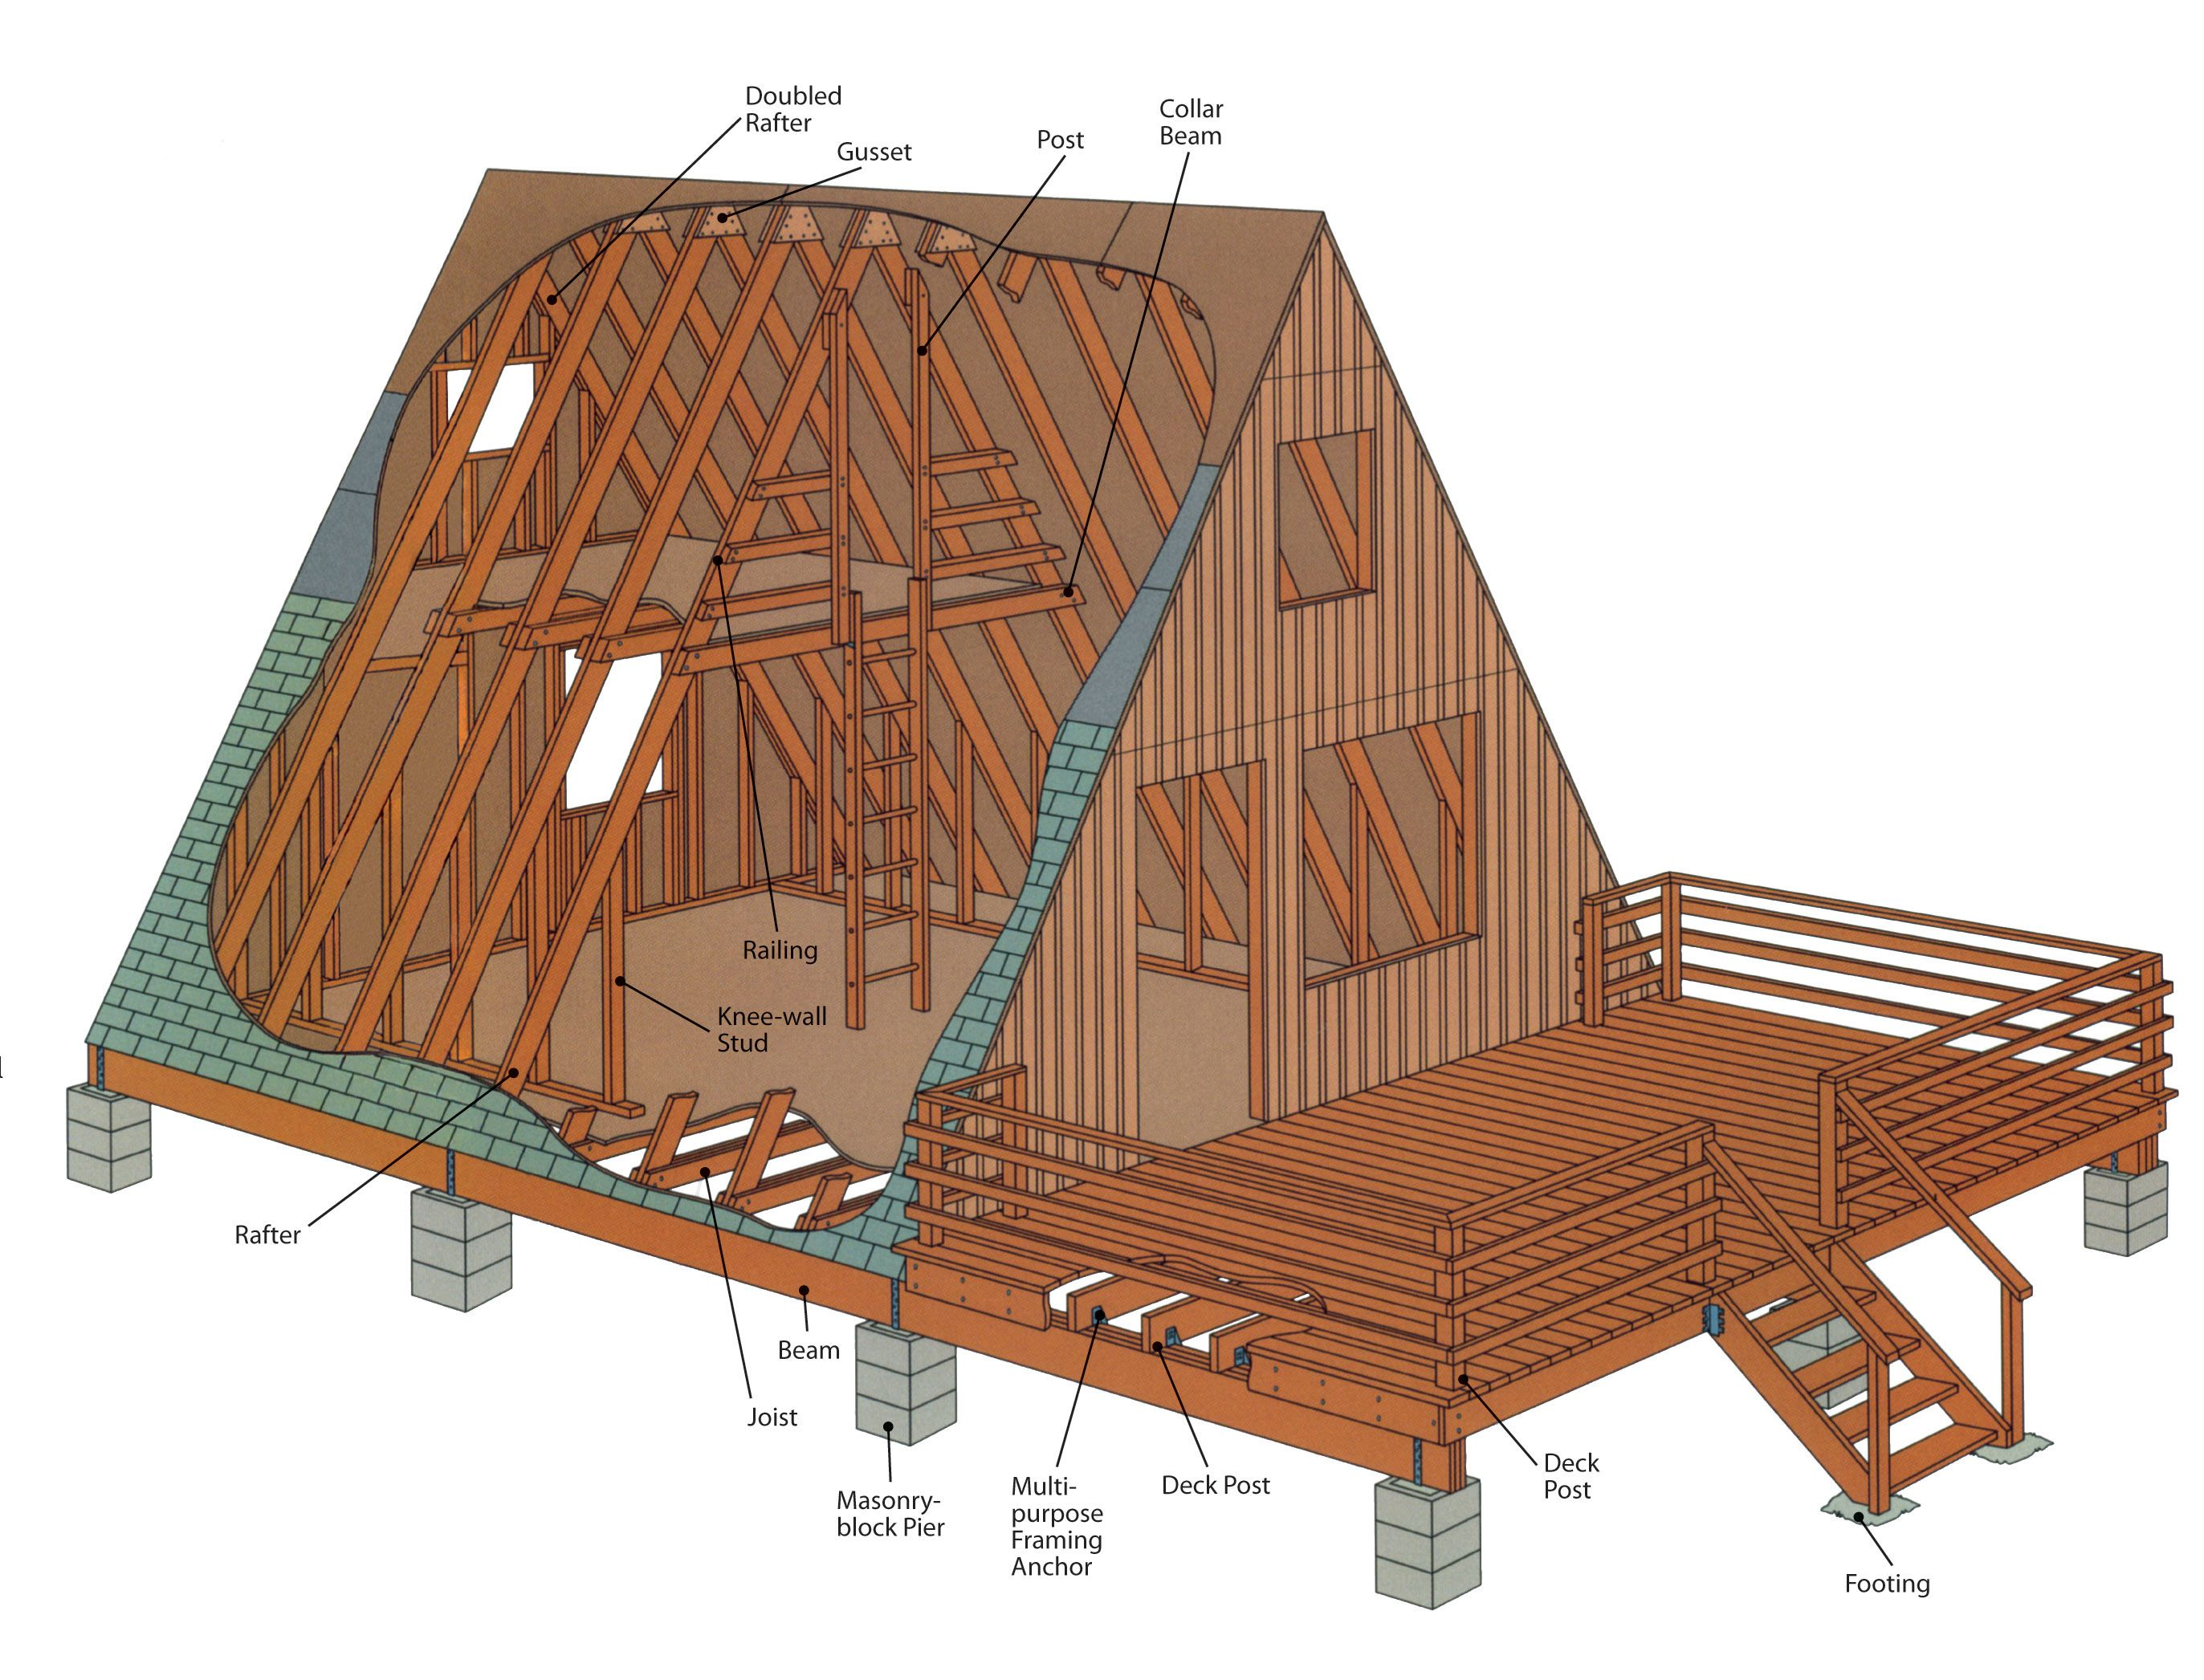 How To Build An A Frame Diy With Images A Frame House Plans